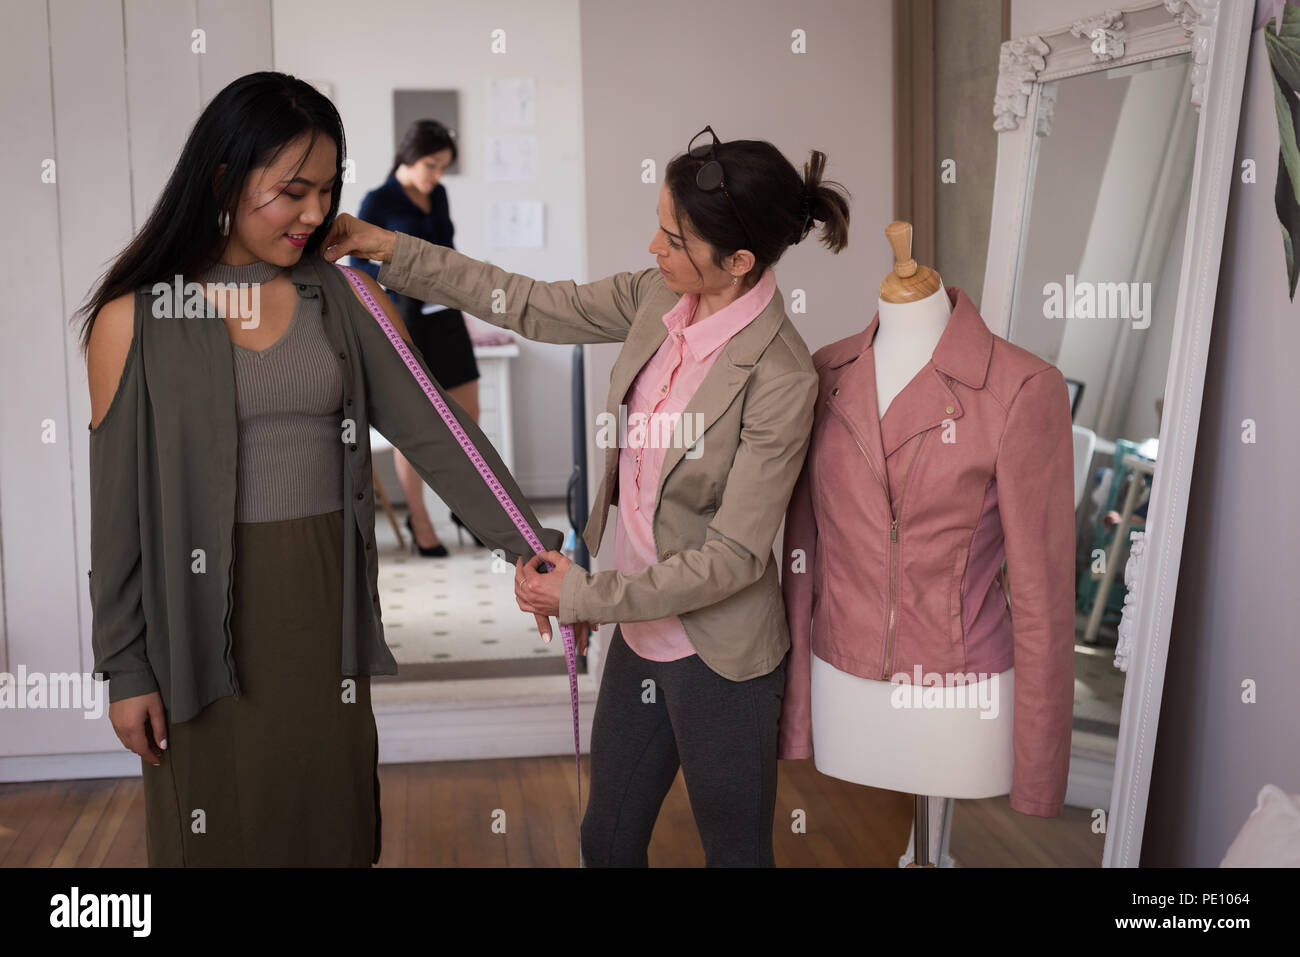 Fashion designer measuring the lengths of a customer - Stock Image